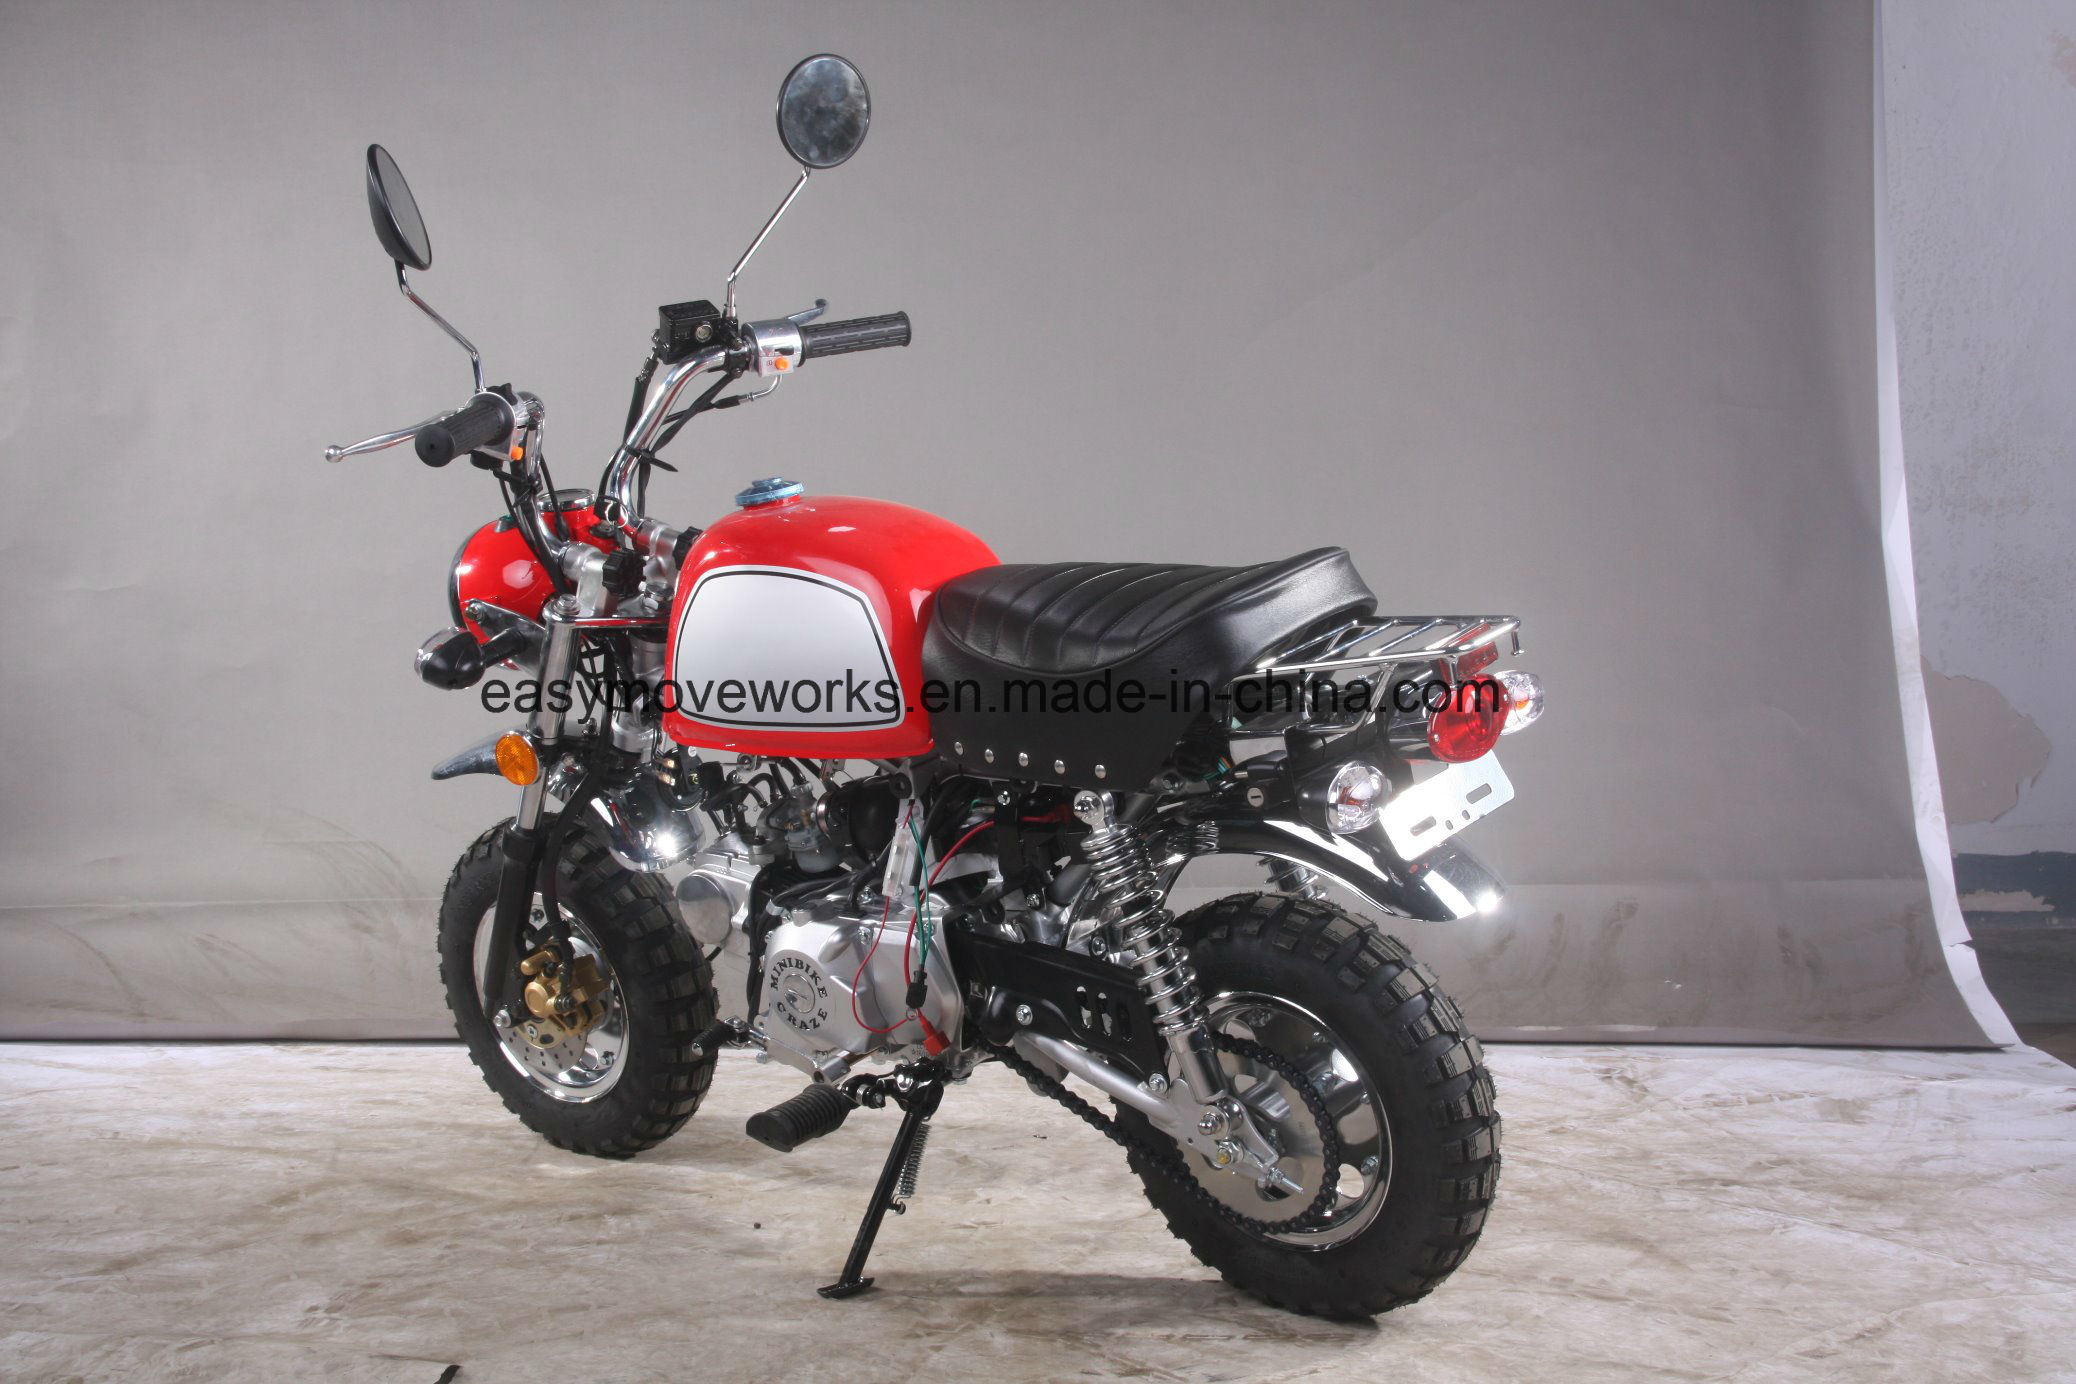 Zhenhua Classic Motorcycle Monkey Bike 125cc Euro4 Big Tank pictures & photos